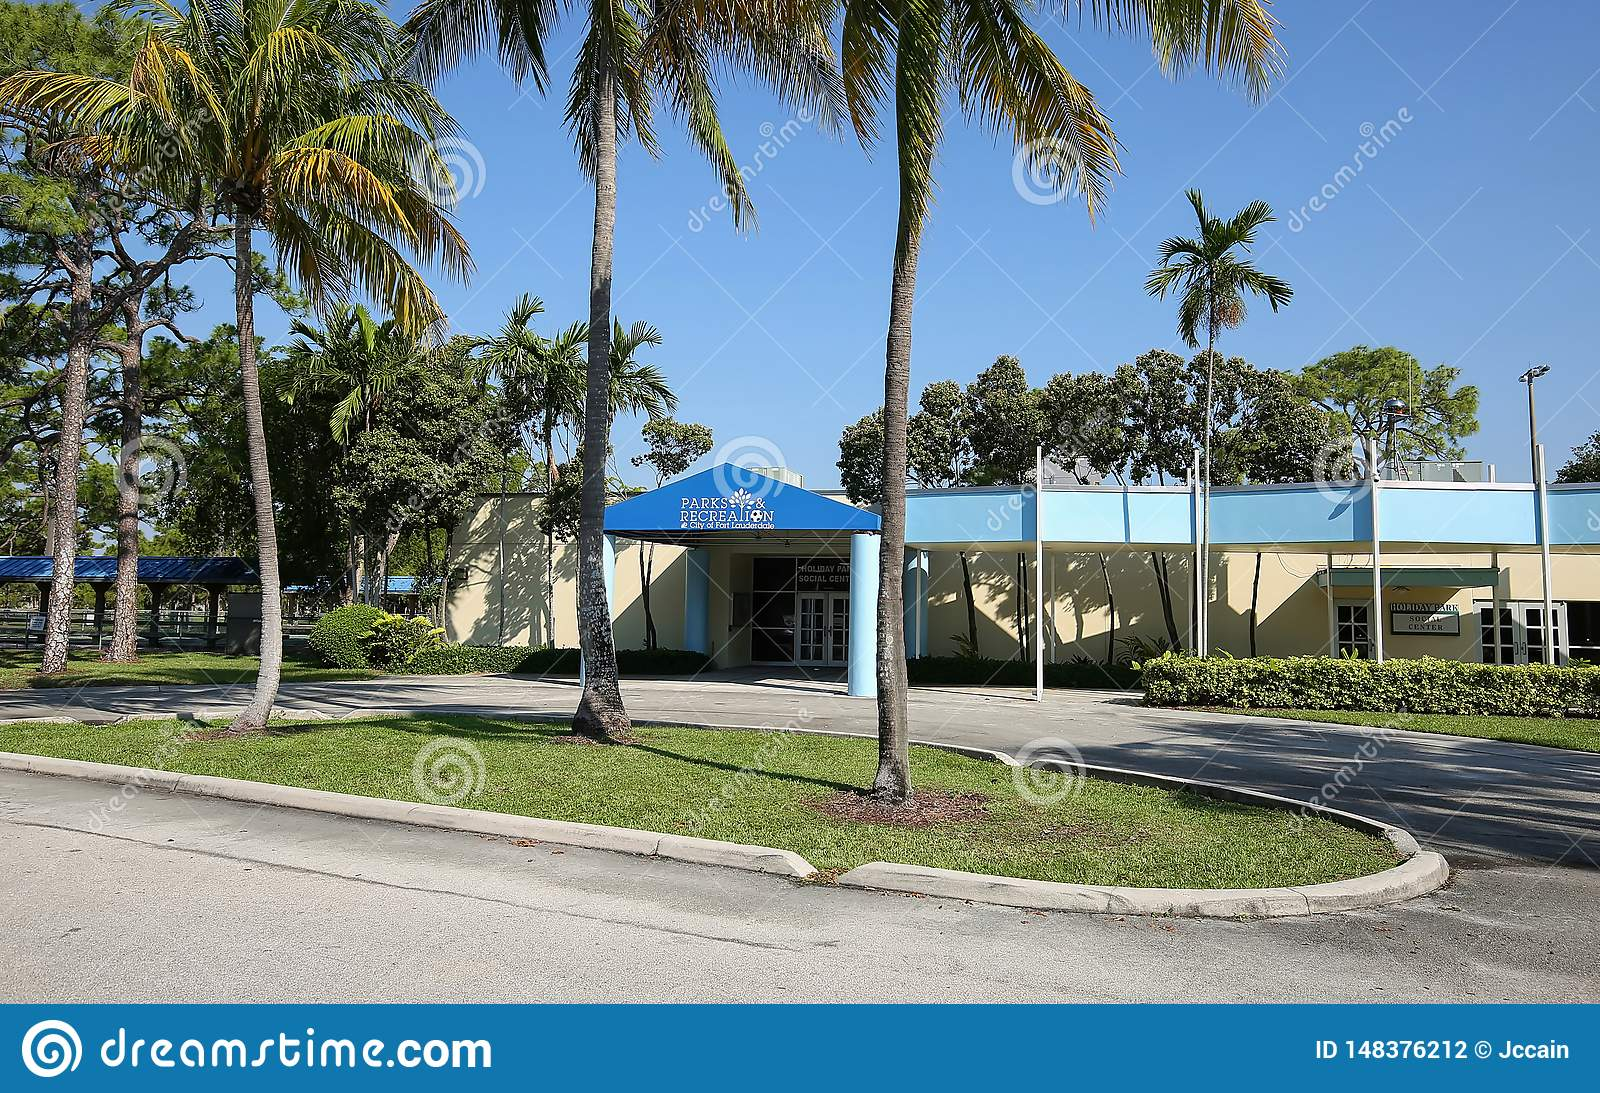 Fort Lauderdale`s Park and Recreation Center